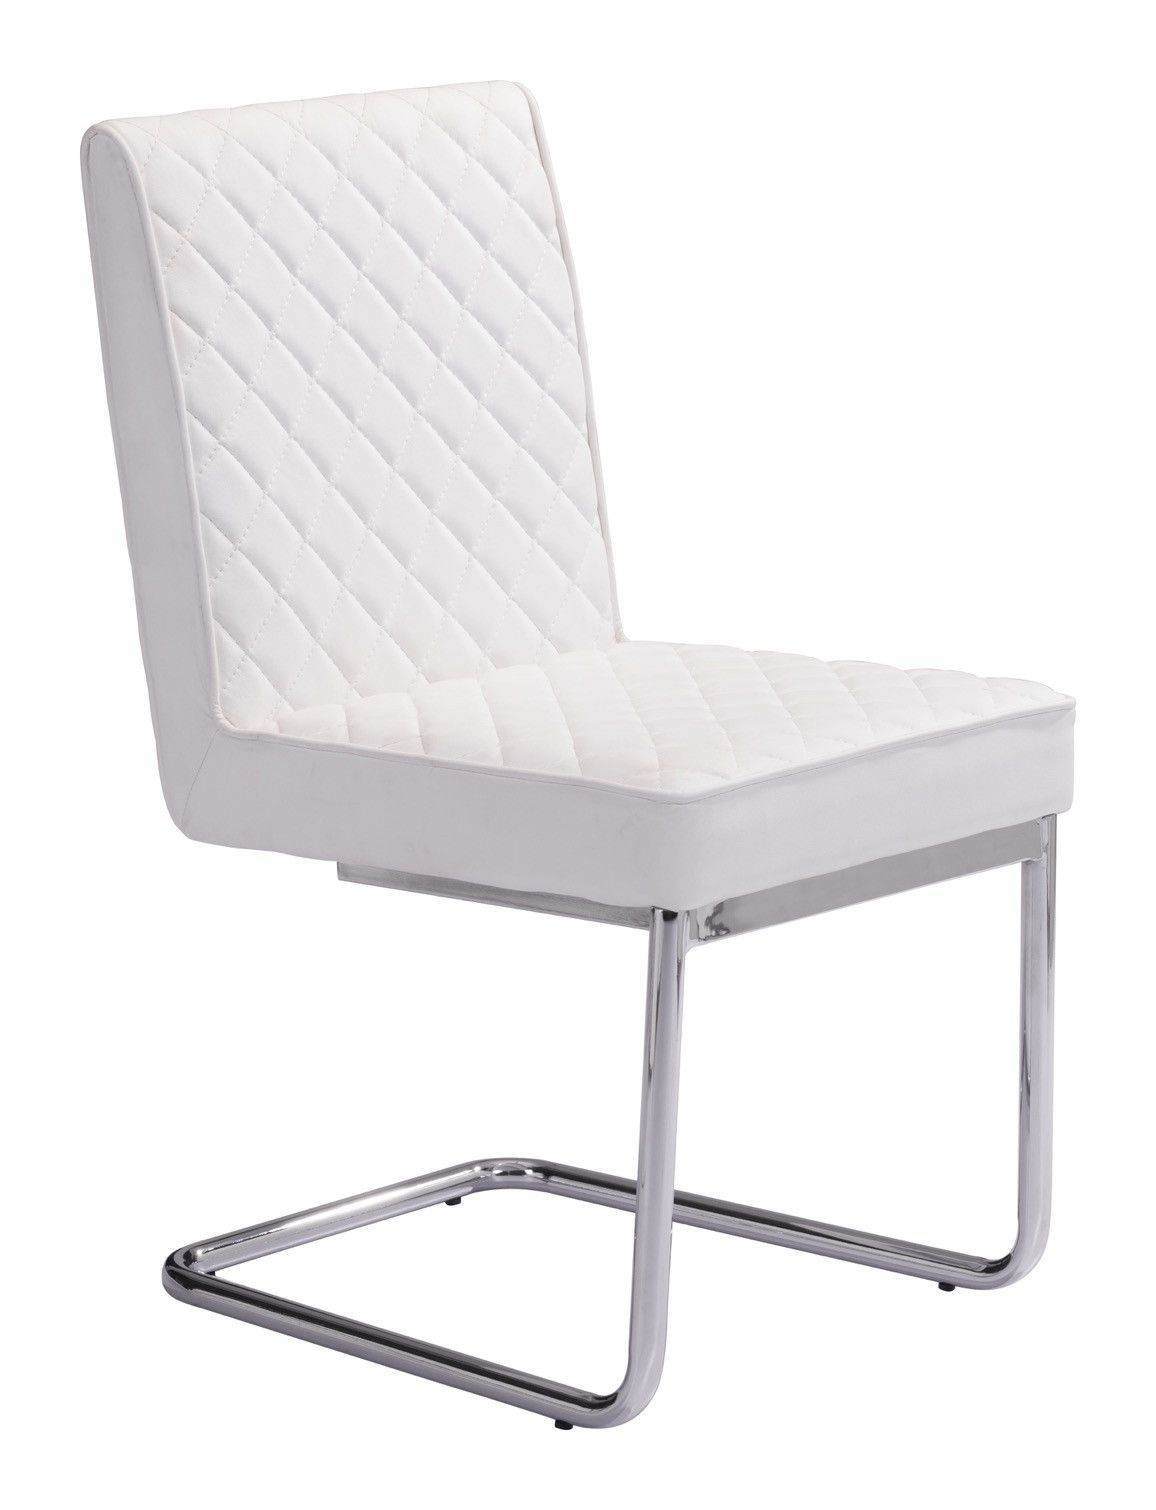 Recent Quilt Armless Dining Chair In Quilted White Leatherette With Chrome Regarding Quilted Black Dining Chairs (#15 of 20)